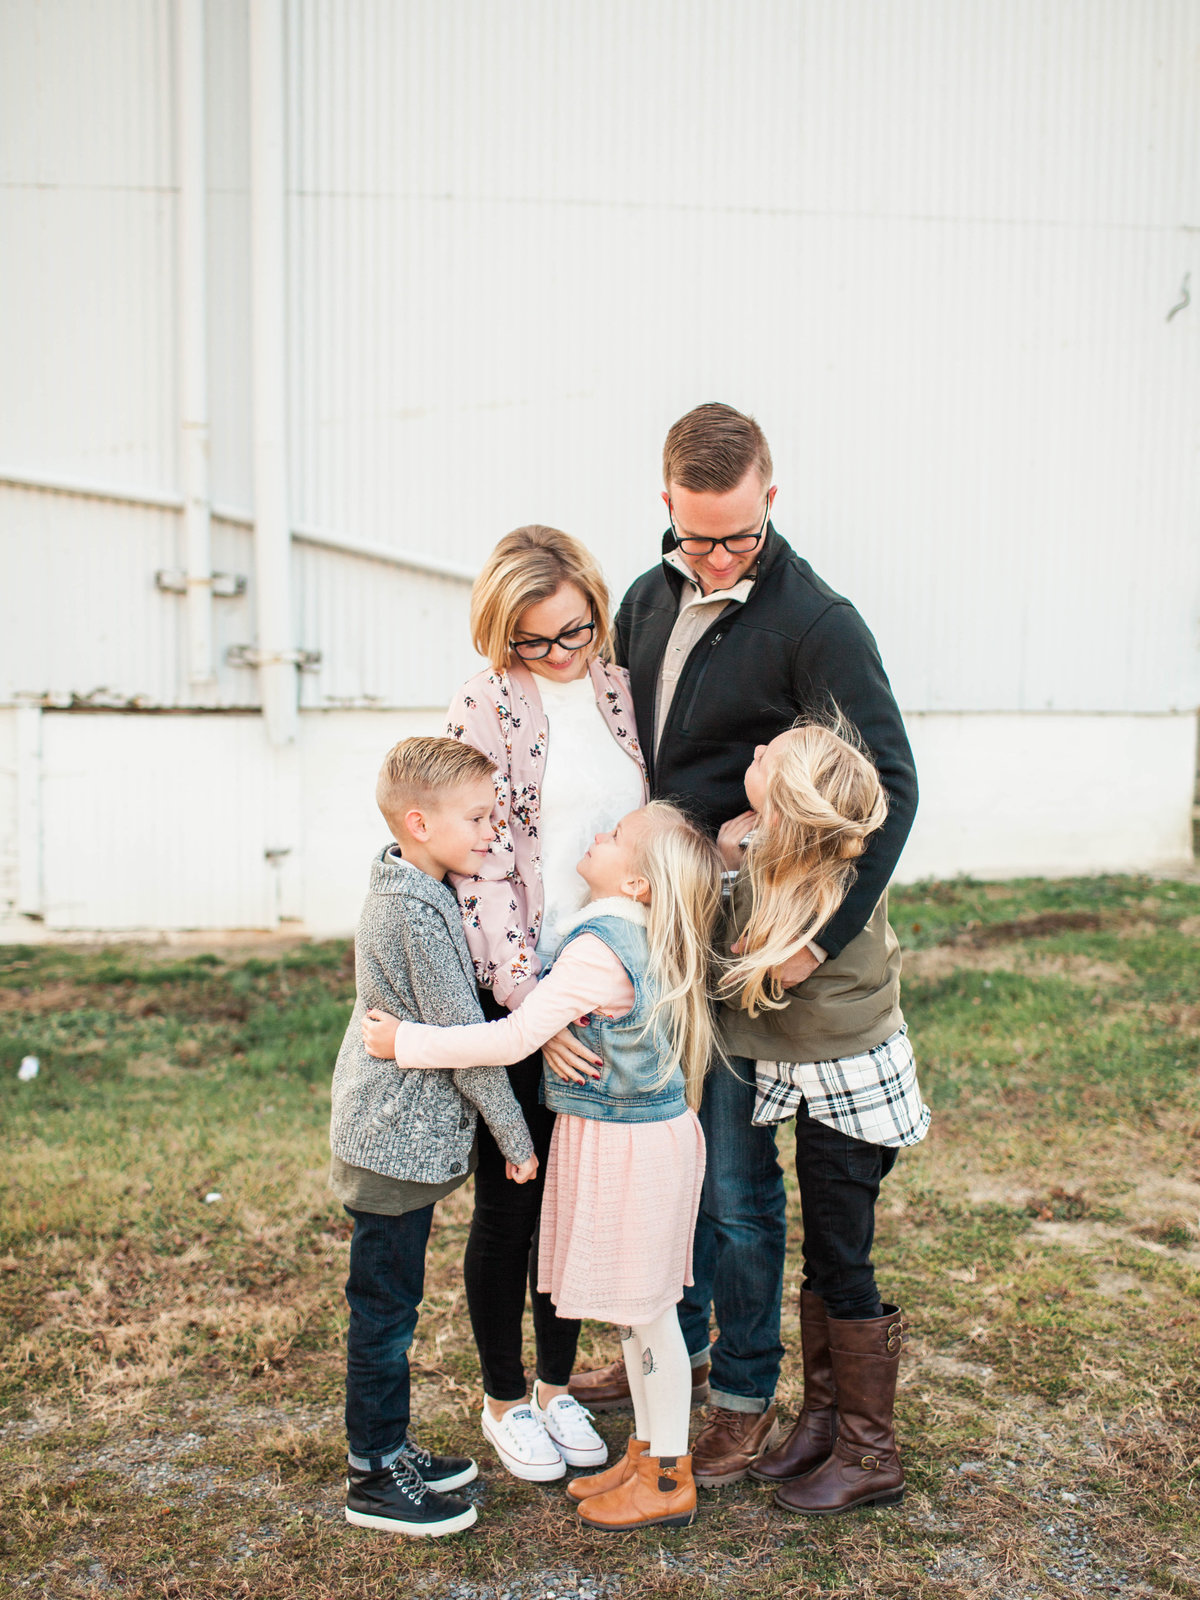 delaware family photographer, simply charming photo session, camden family photography-3